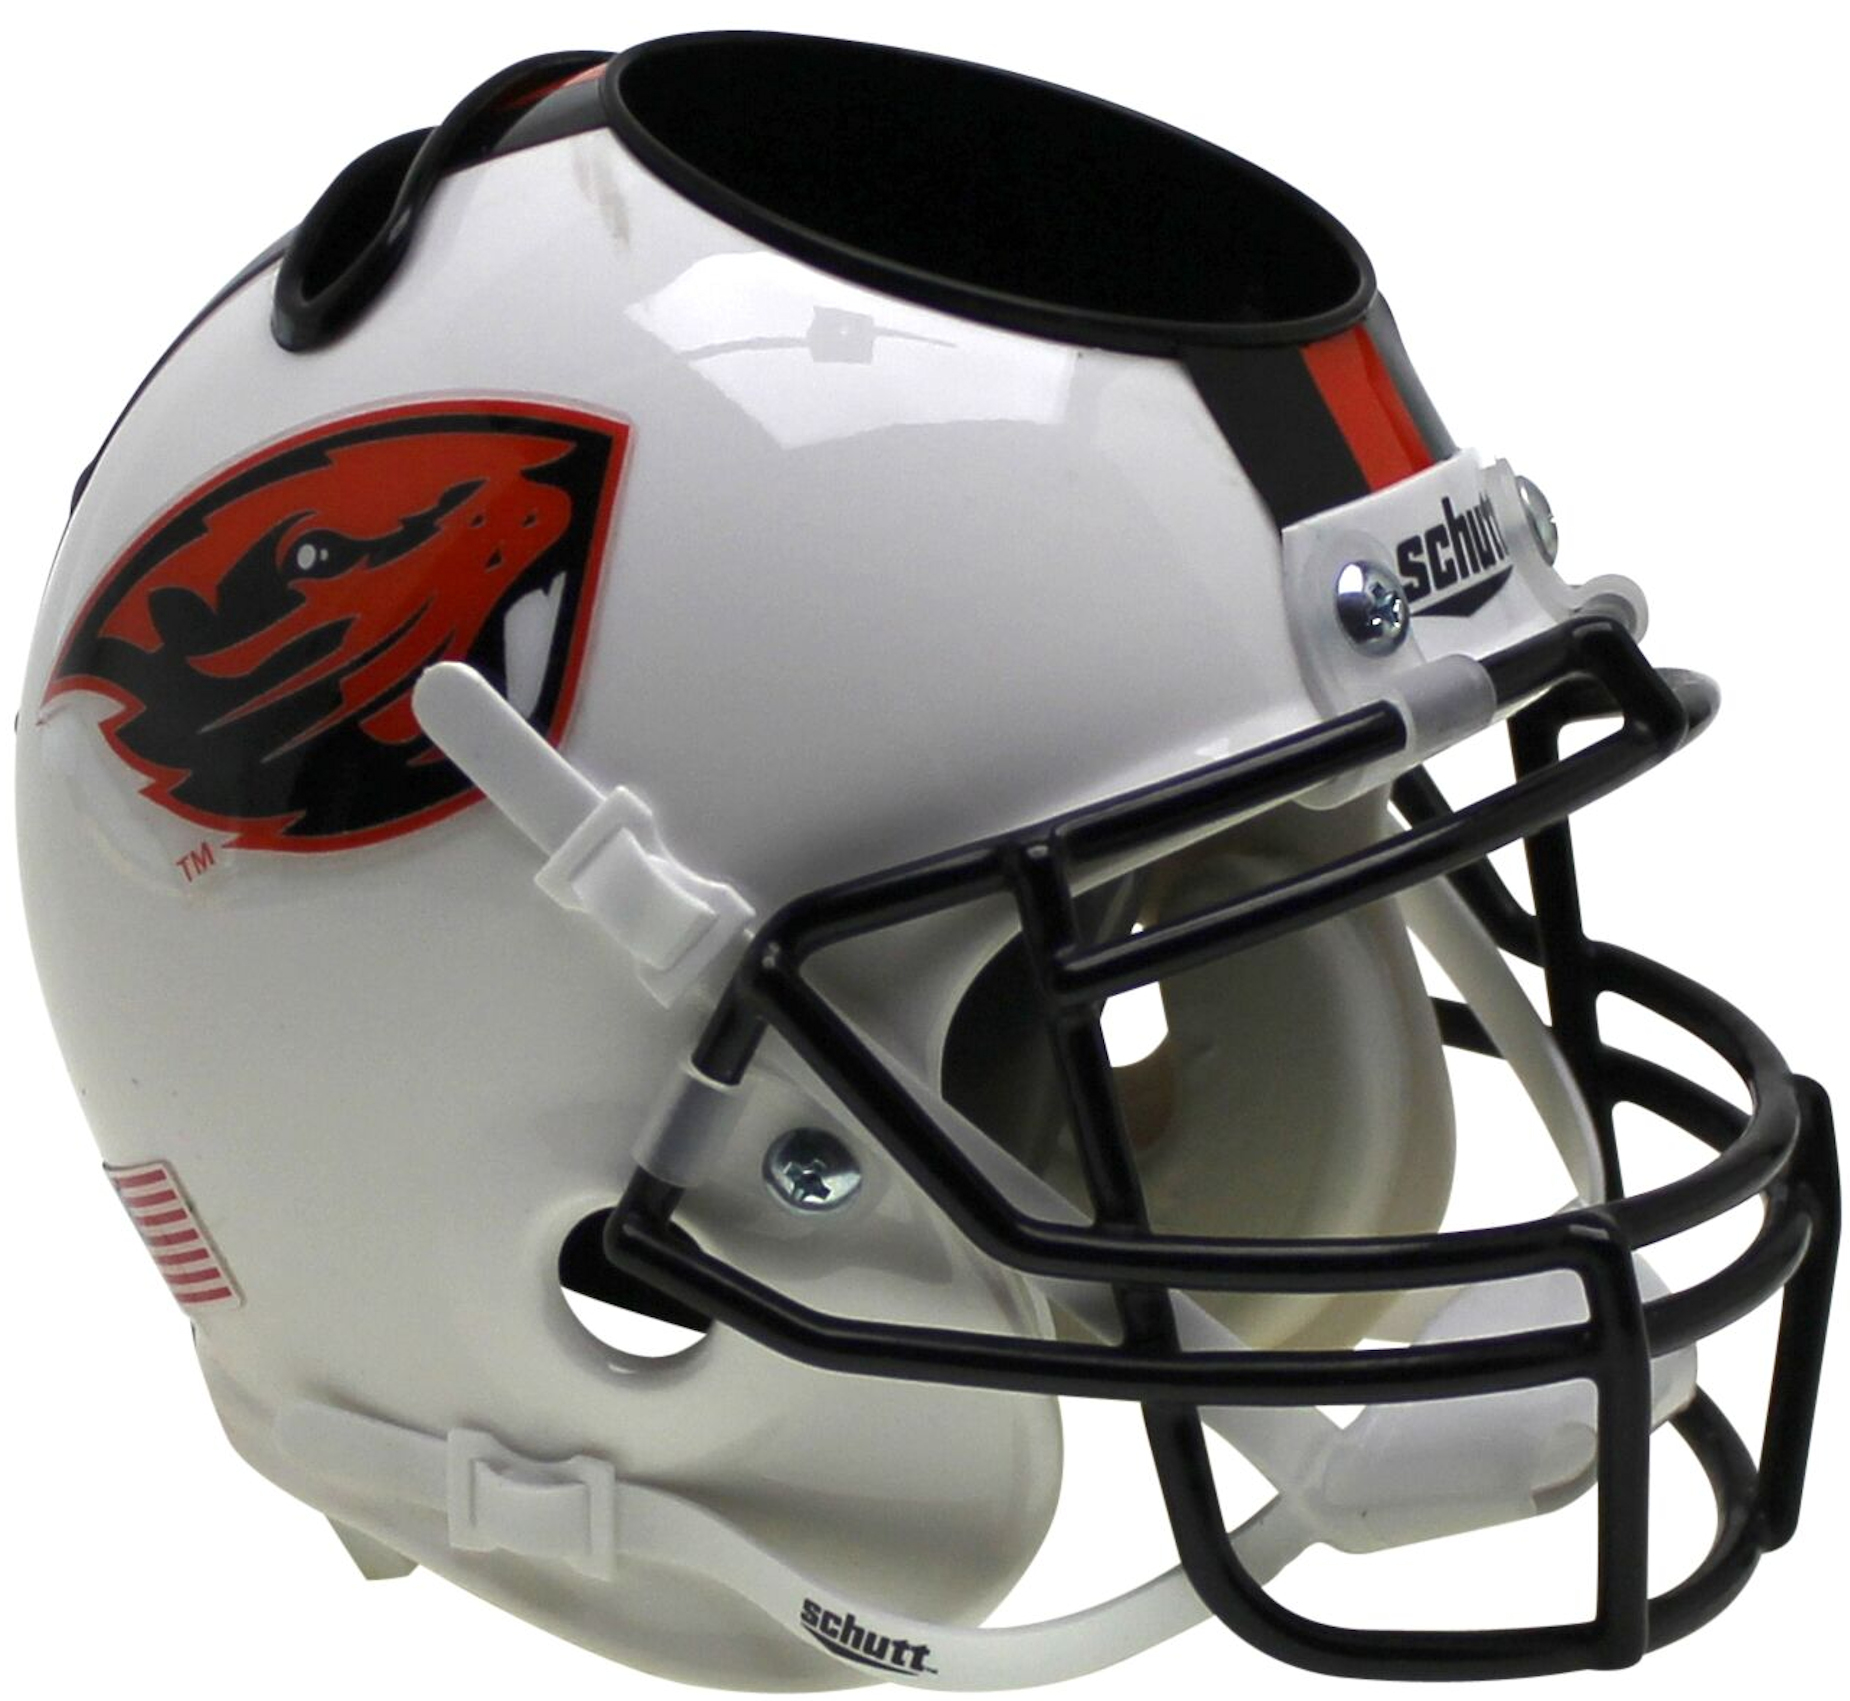 Oregon State Beavers Miniature Football Helmet Desk Caddy <B>Orange Beaver/Stripe</B>